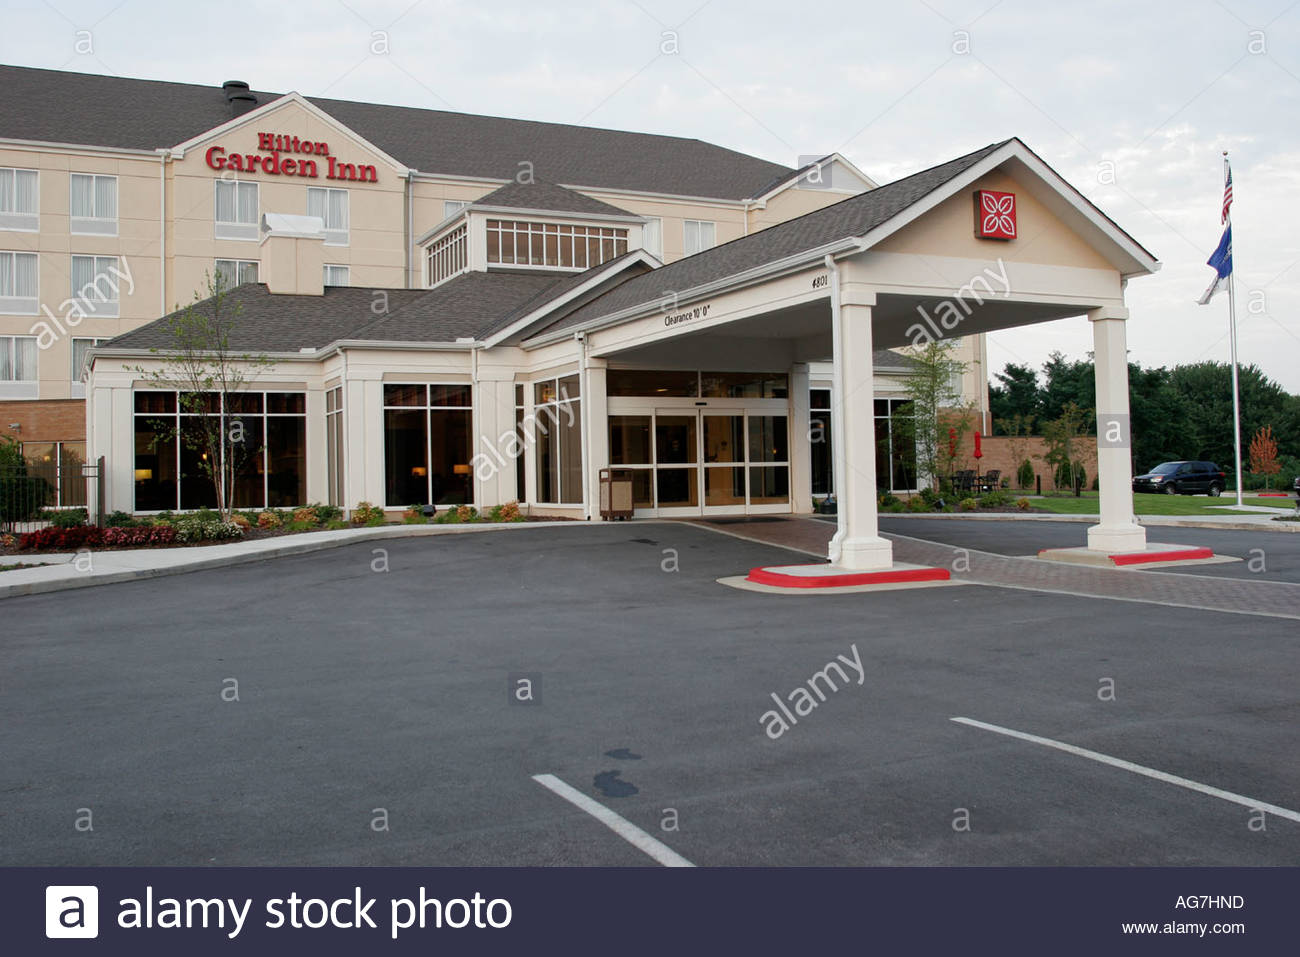 Huntsville Alabama Hilton Garden Inn Motel Entrance Parking Lot